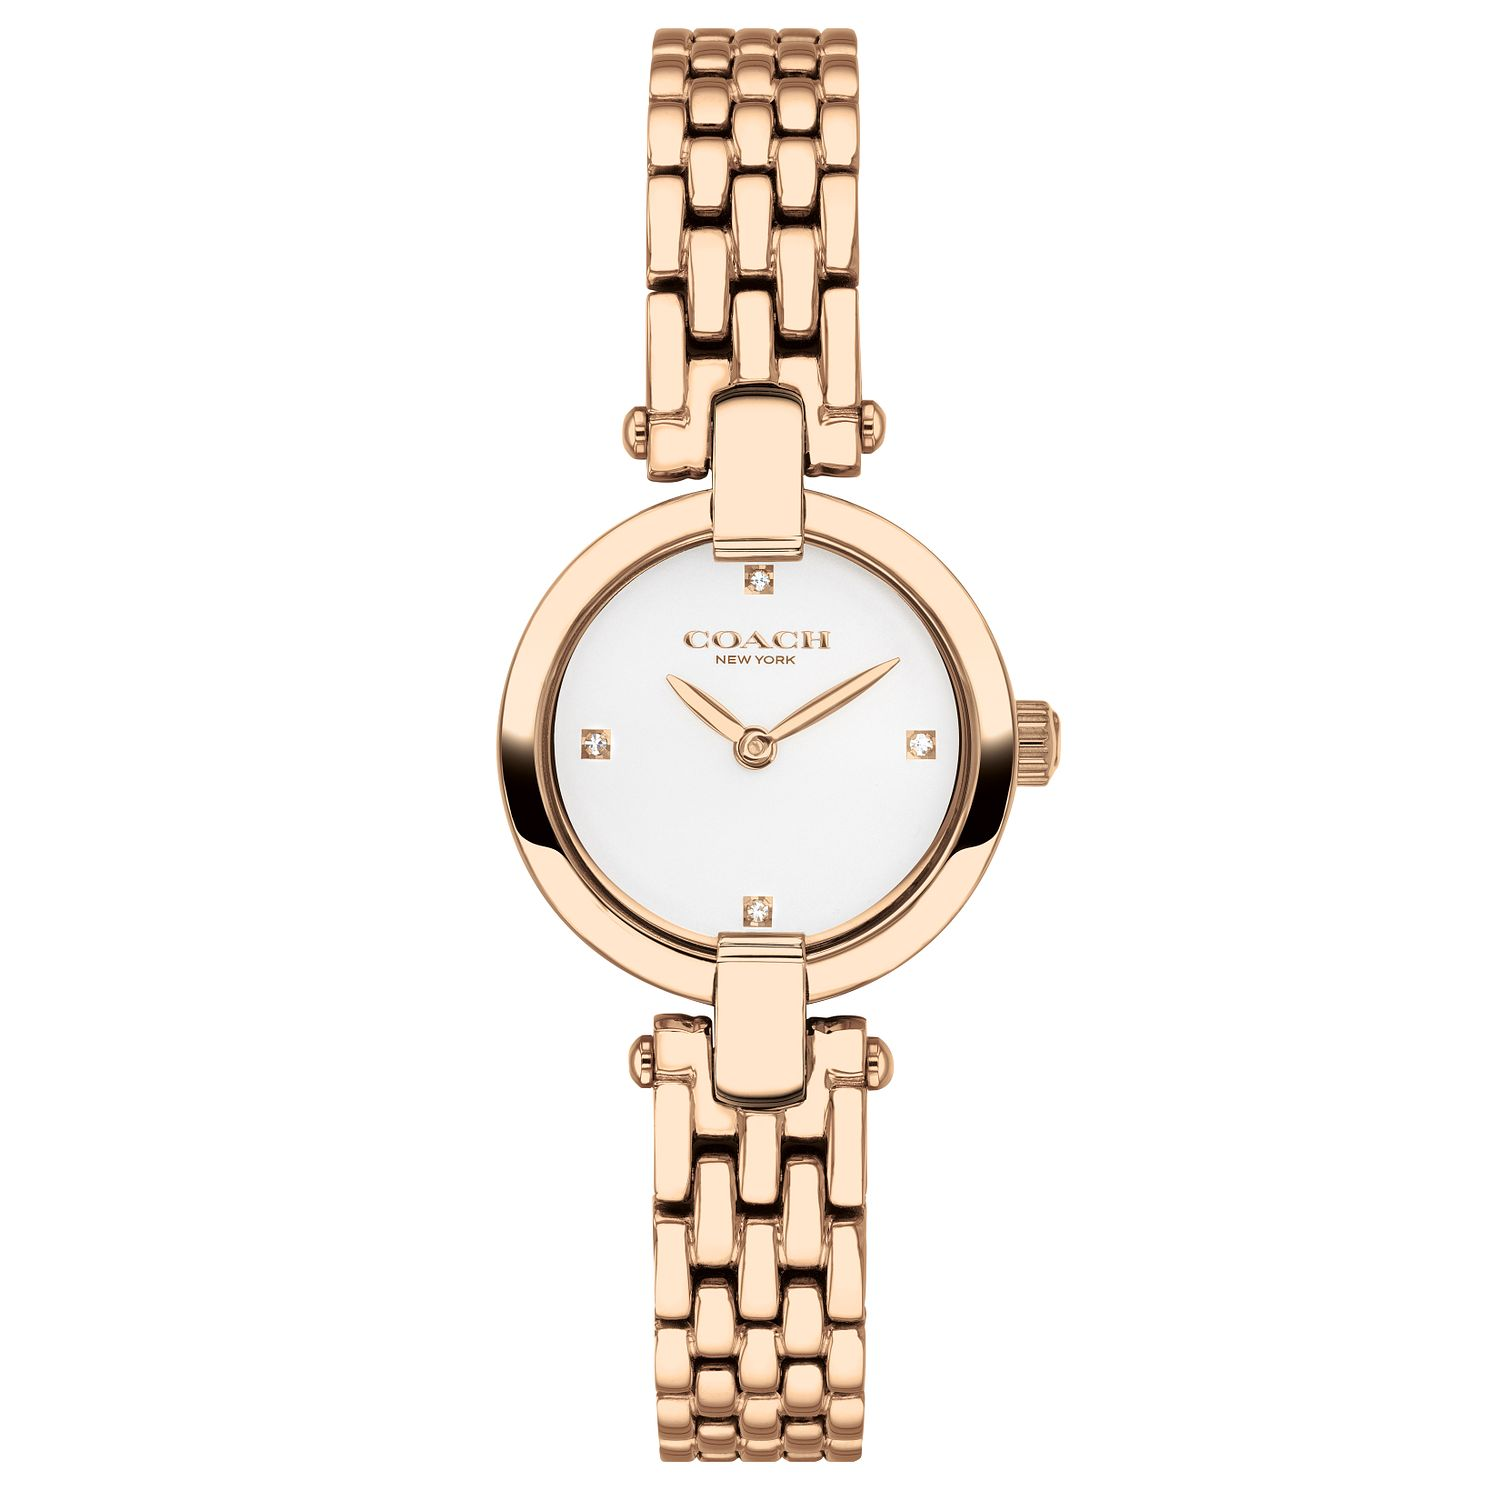 Coach Chrystie Ladies' Rose Gold Tone Bracelet Watch - Product number 2622033